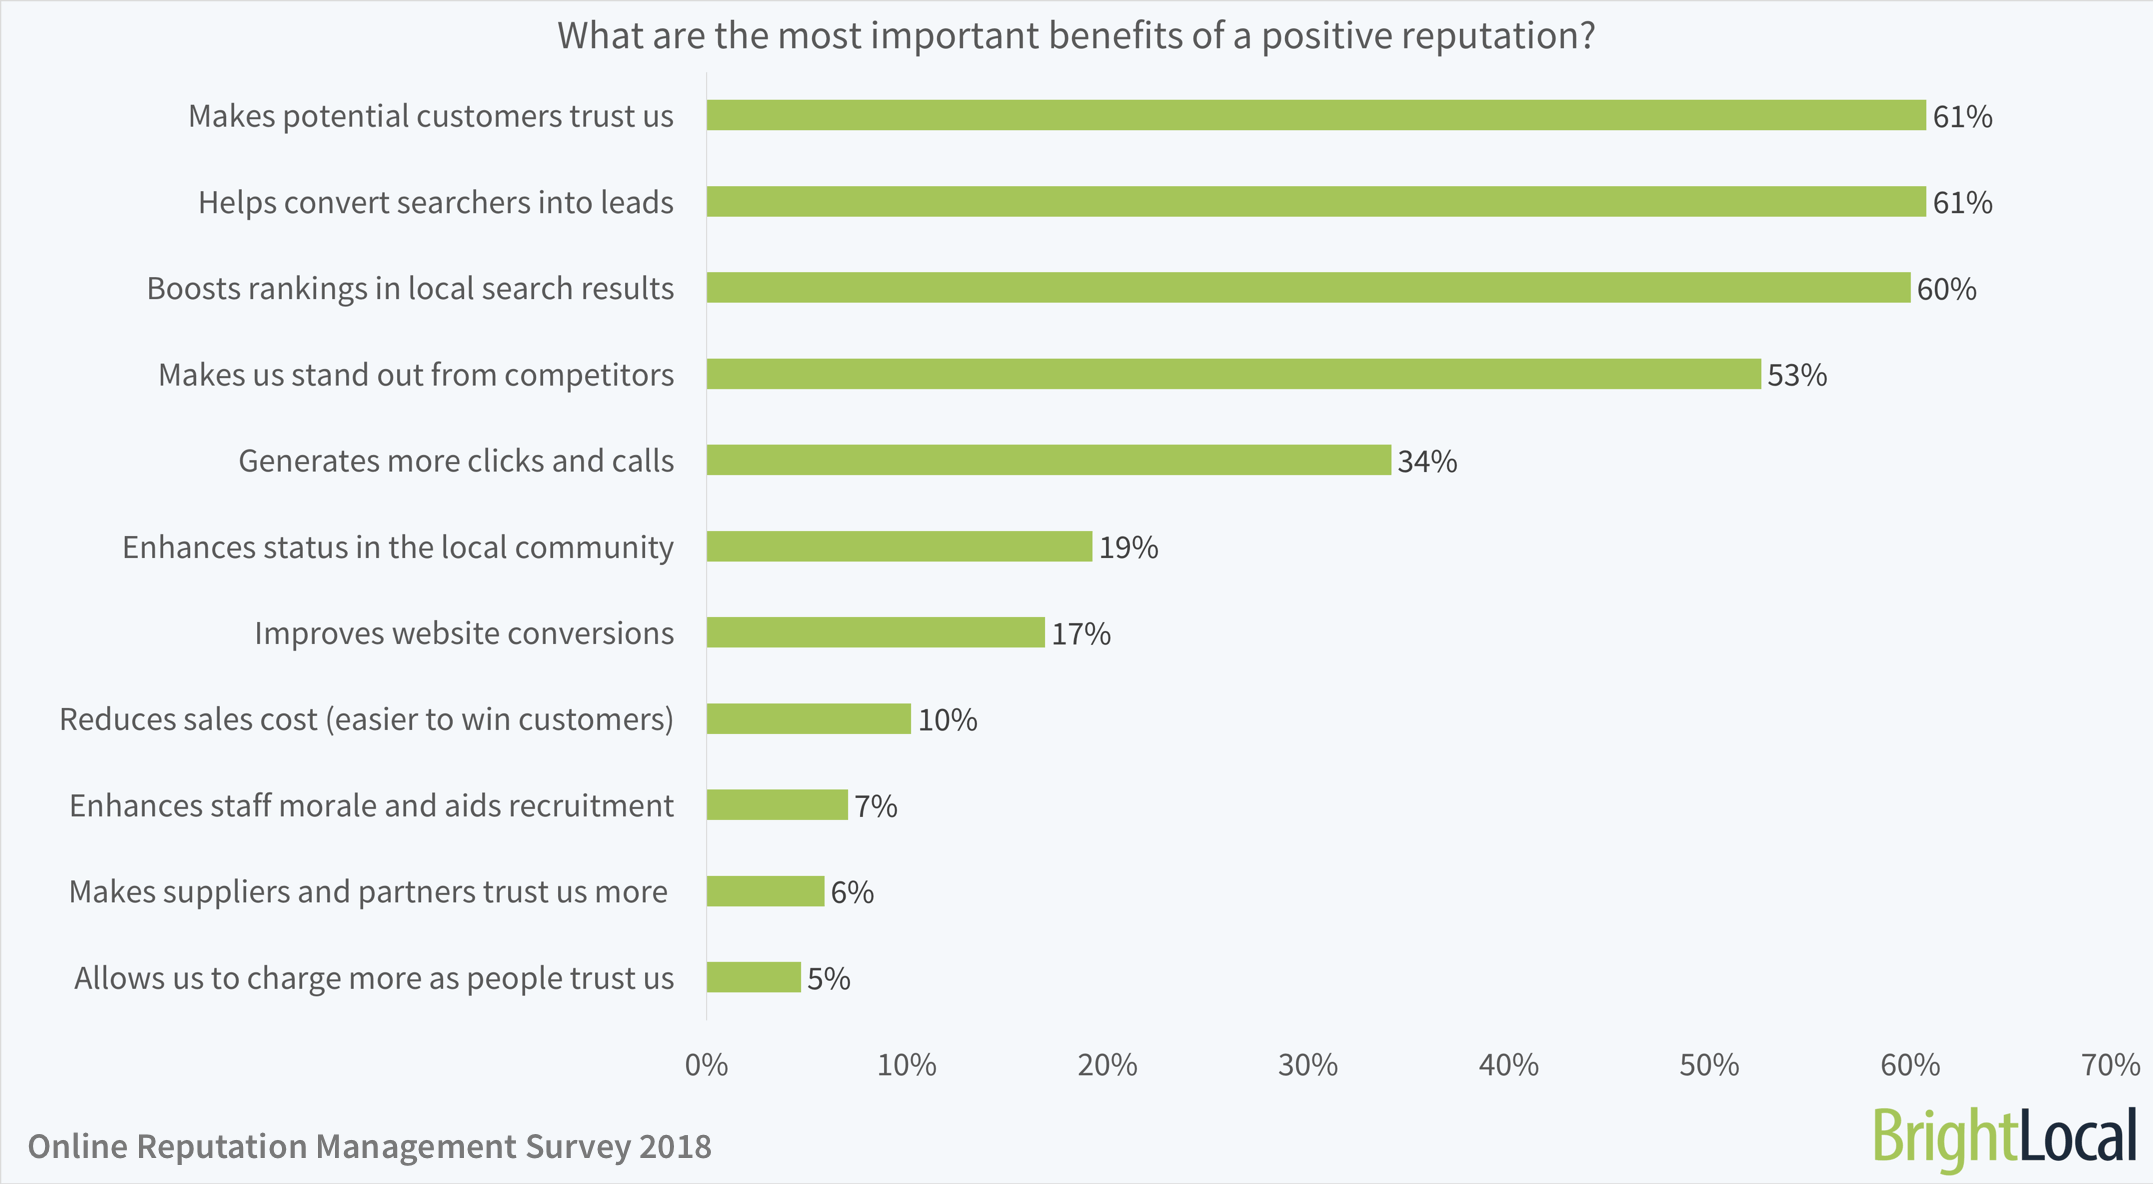 What are the most important benefits of a positive reputation?